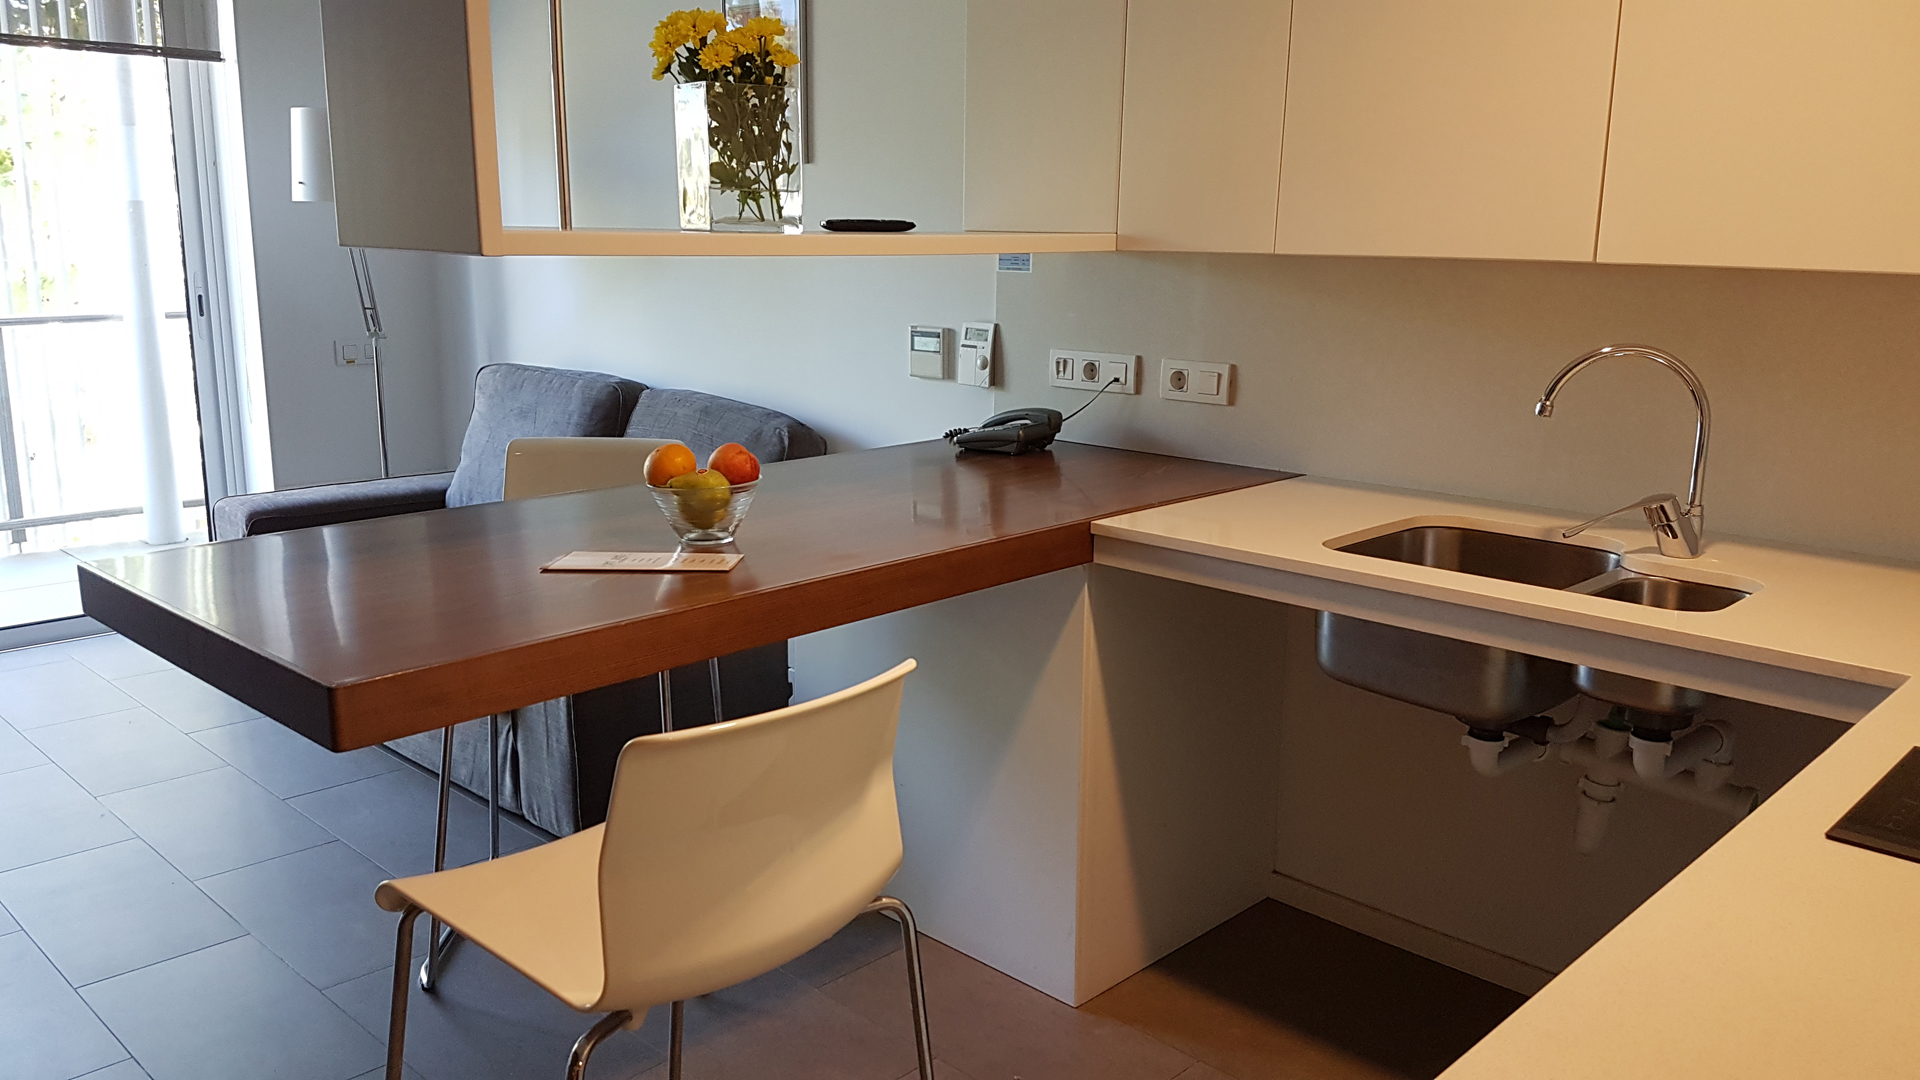 mics-sant-jordi-apartment-kitchen